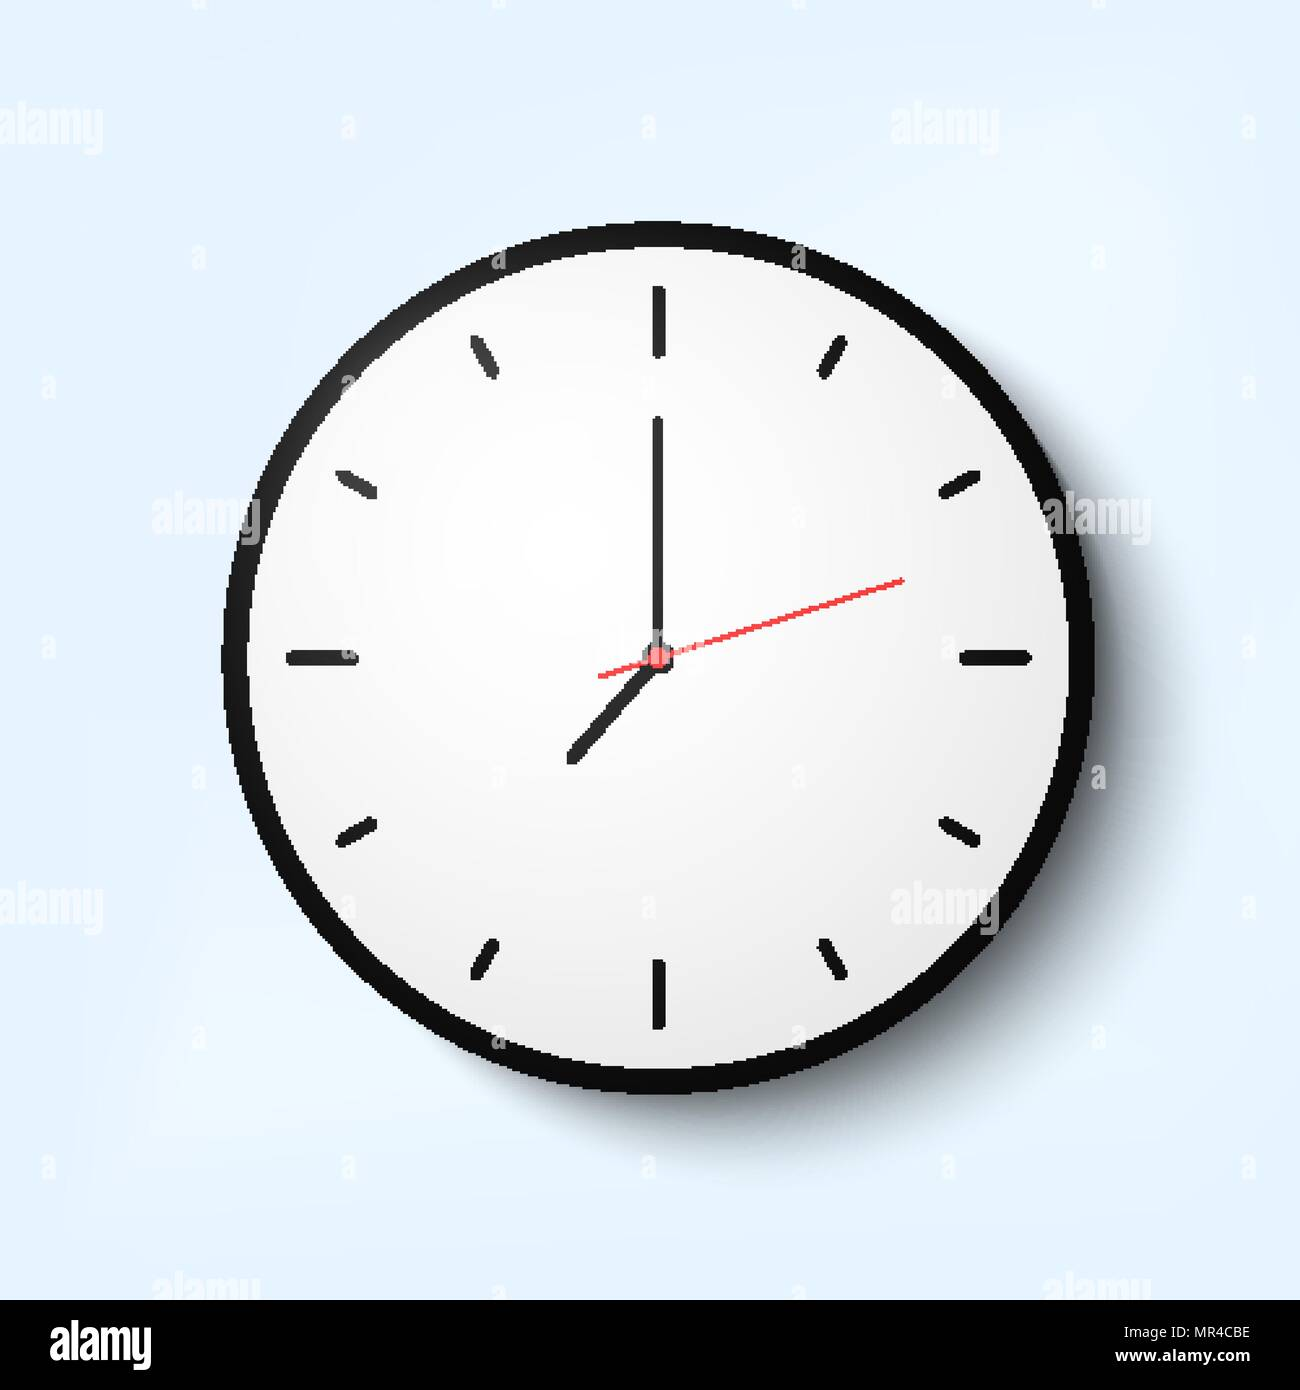 Quartz Clock Stock Photos Images Alamy Timer From Old Electronics For You Light Wall With Thin Time Arrows Image